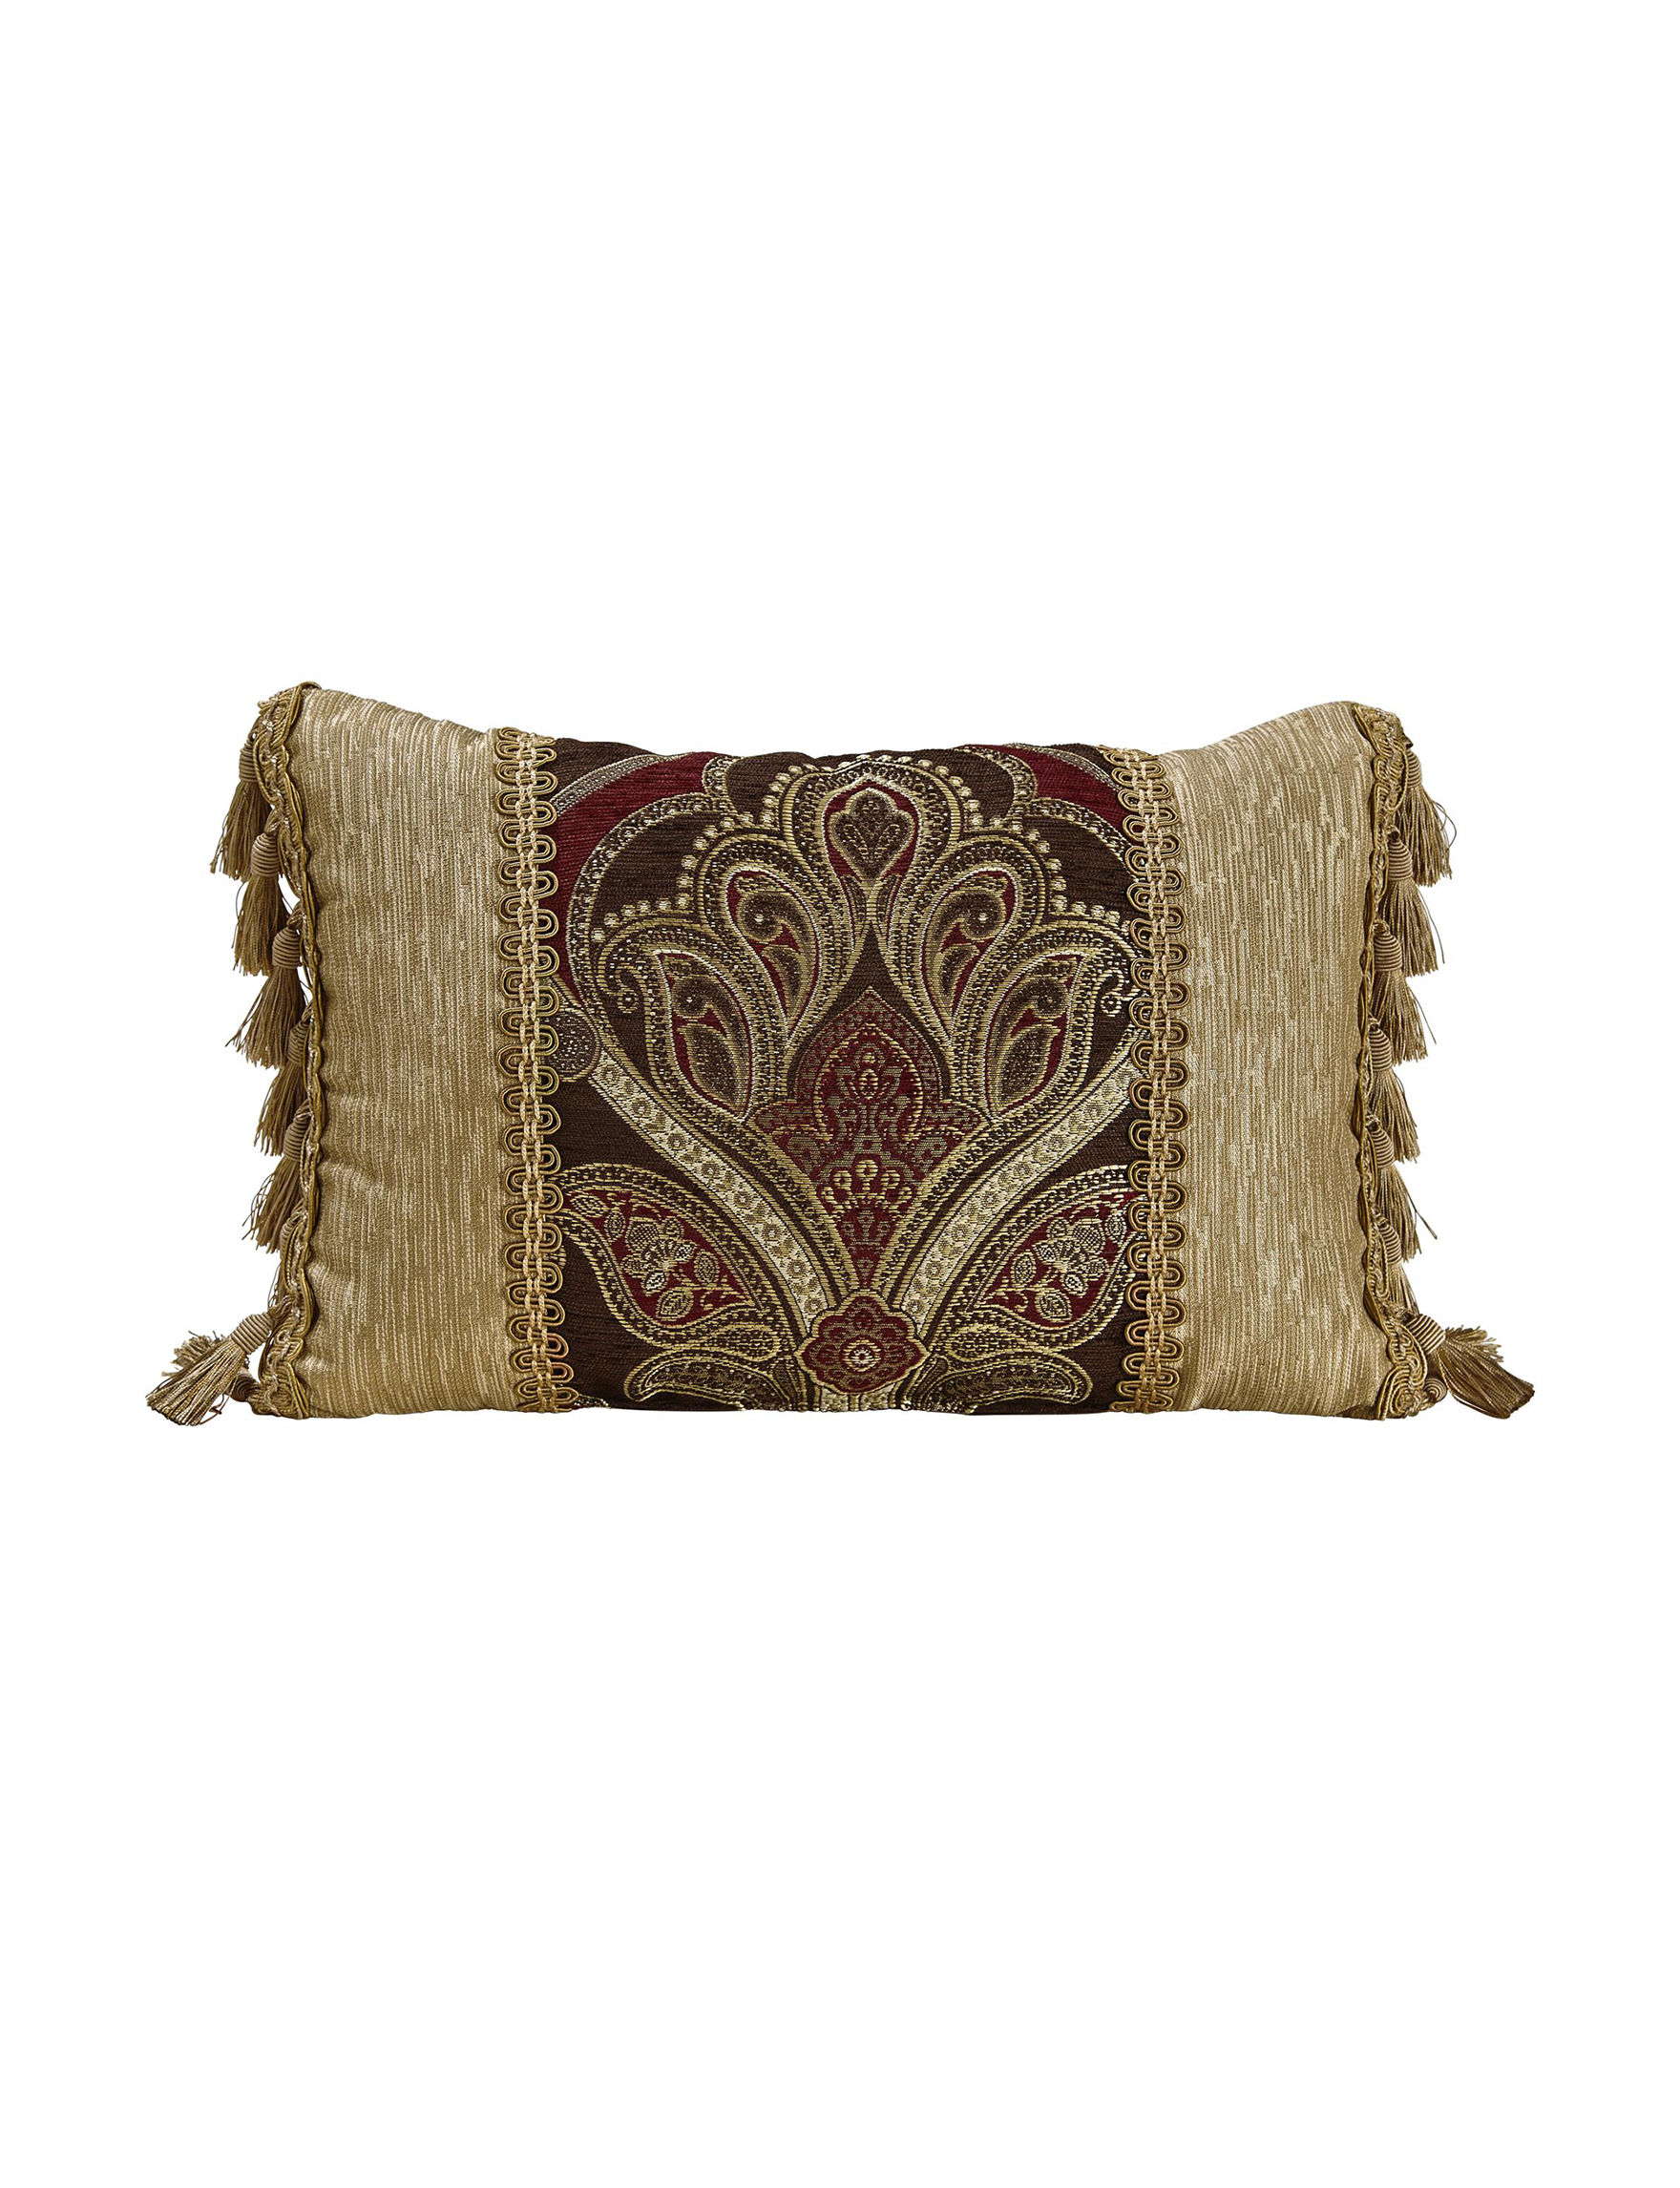 Croscill  Decorative Pillows